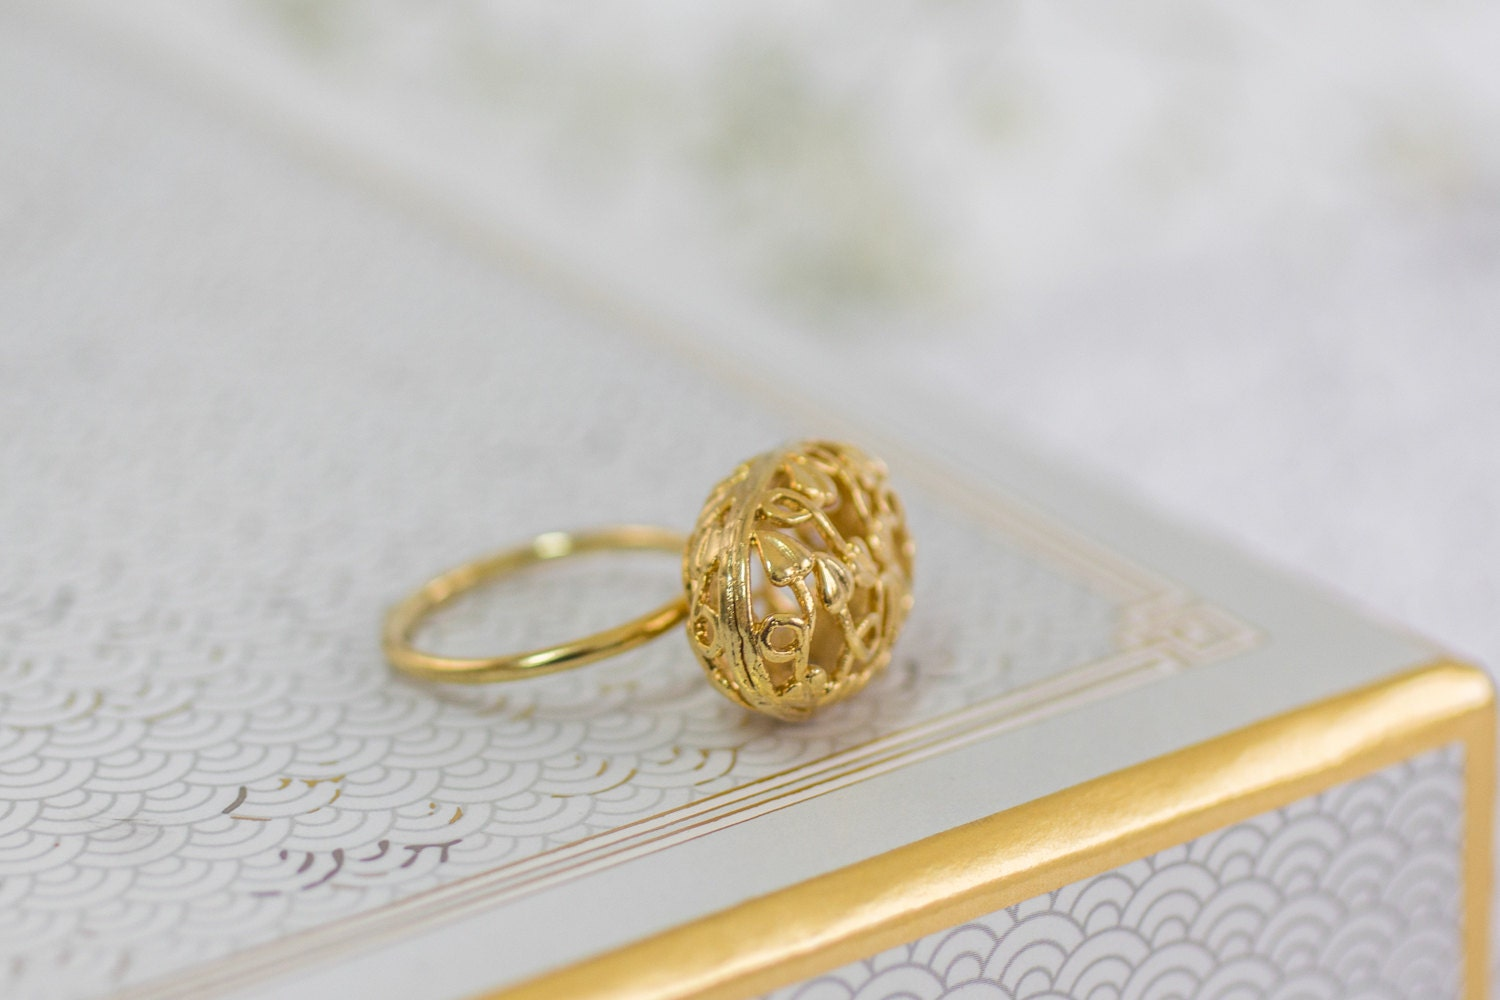 Retro Rings and Vintage Wedding Sets The Handy Guide